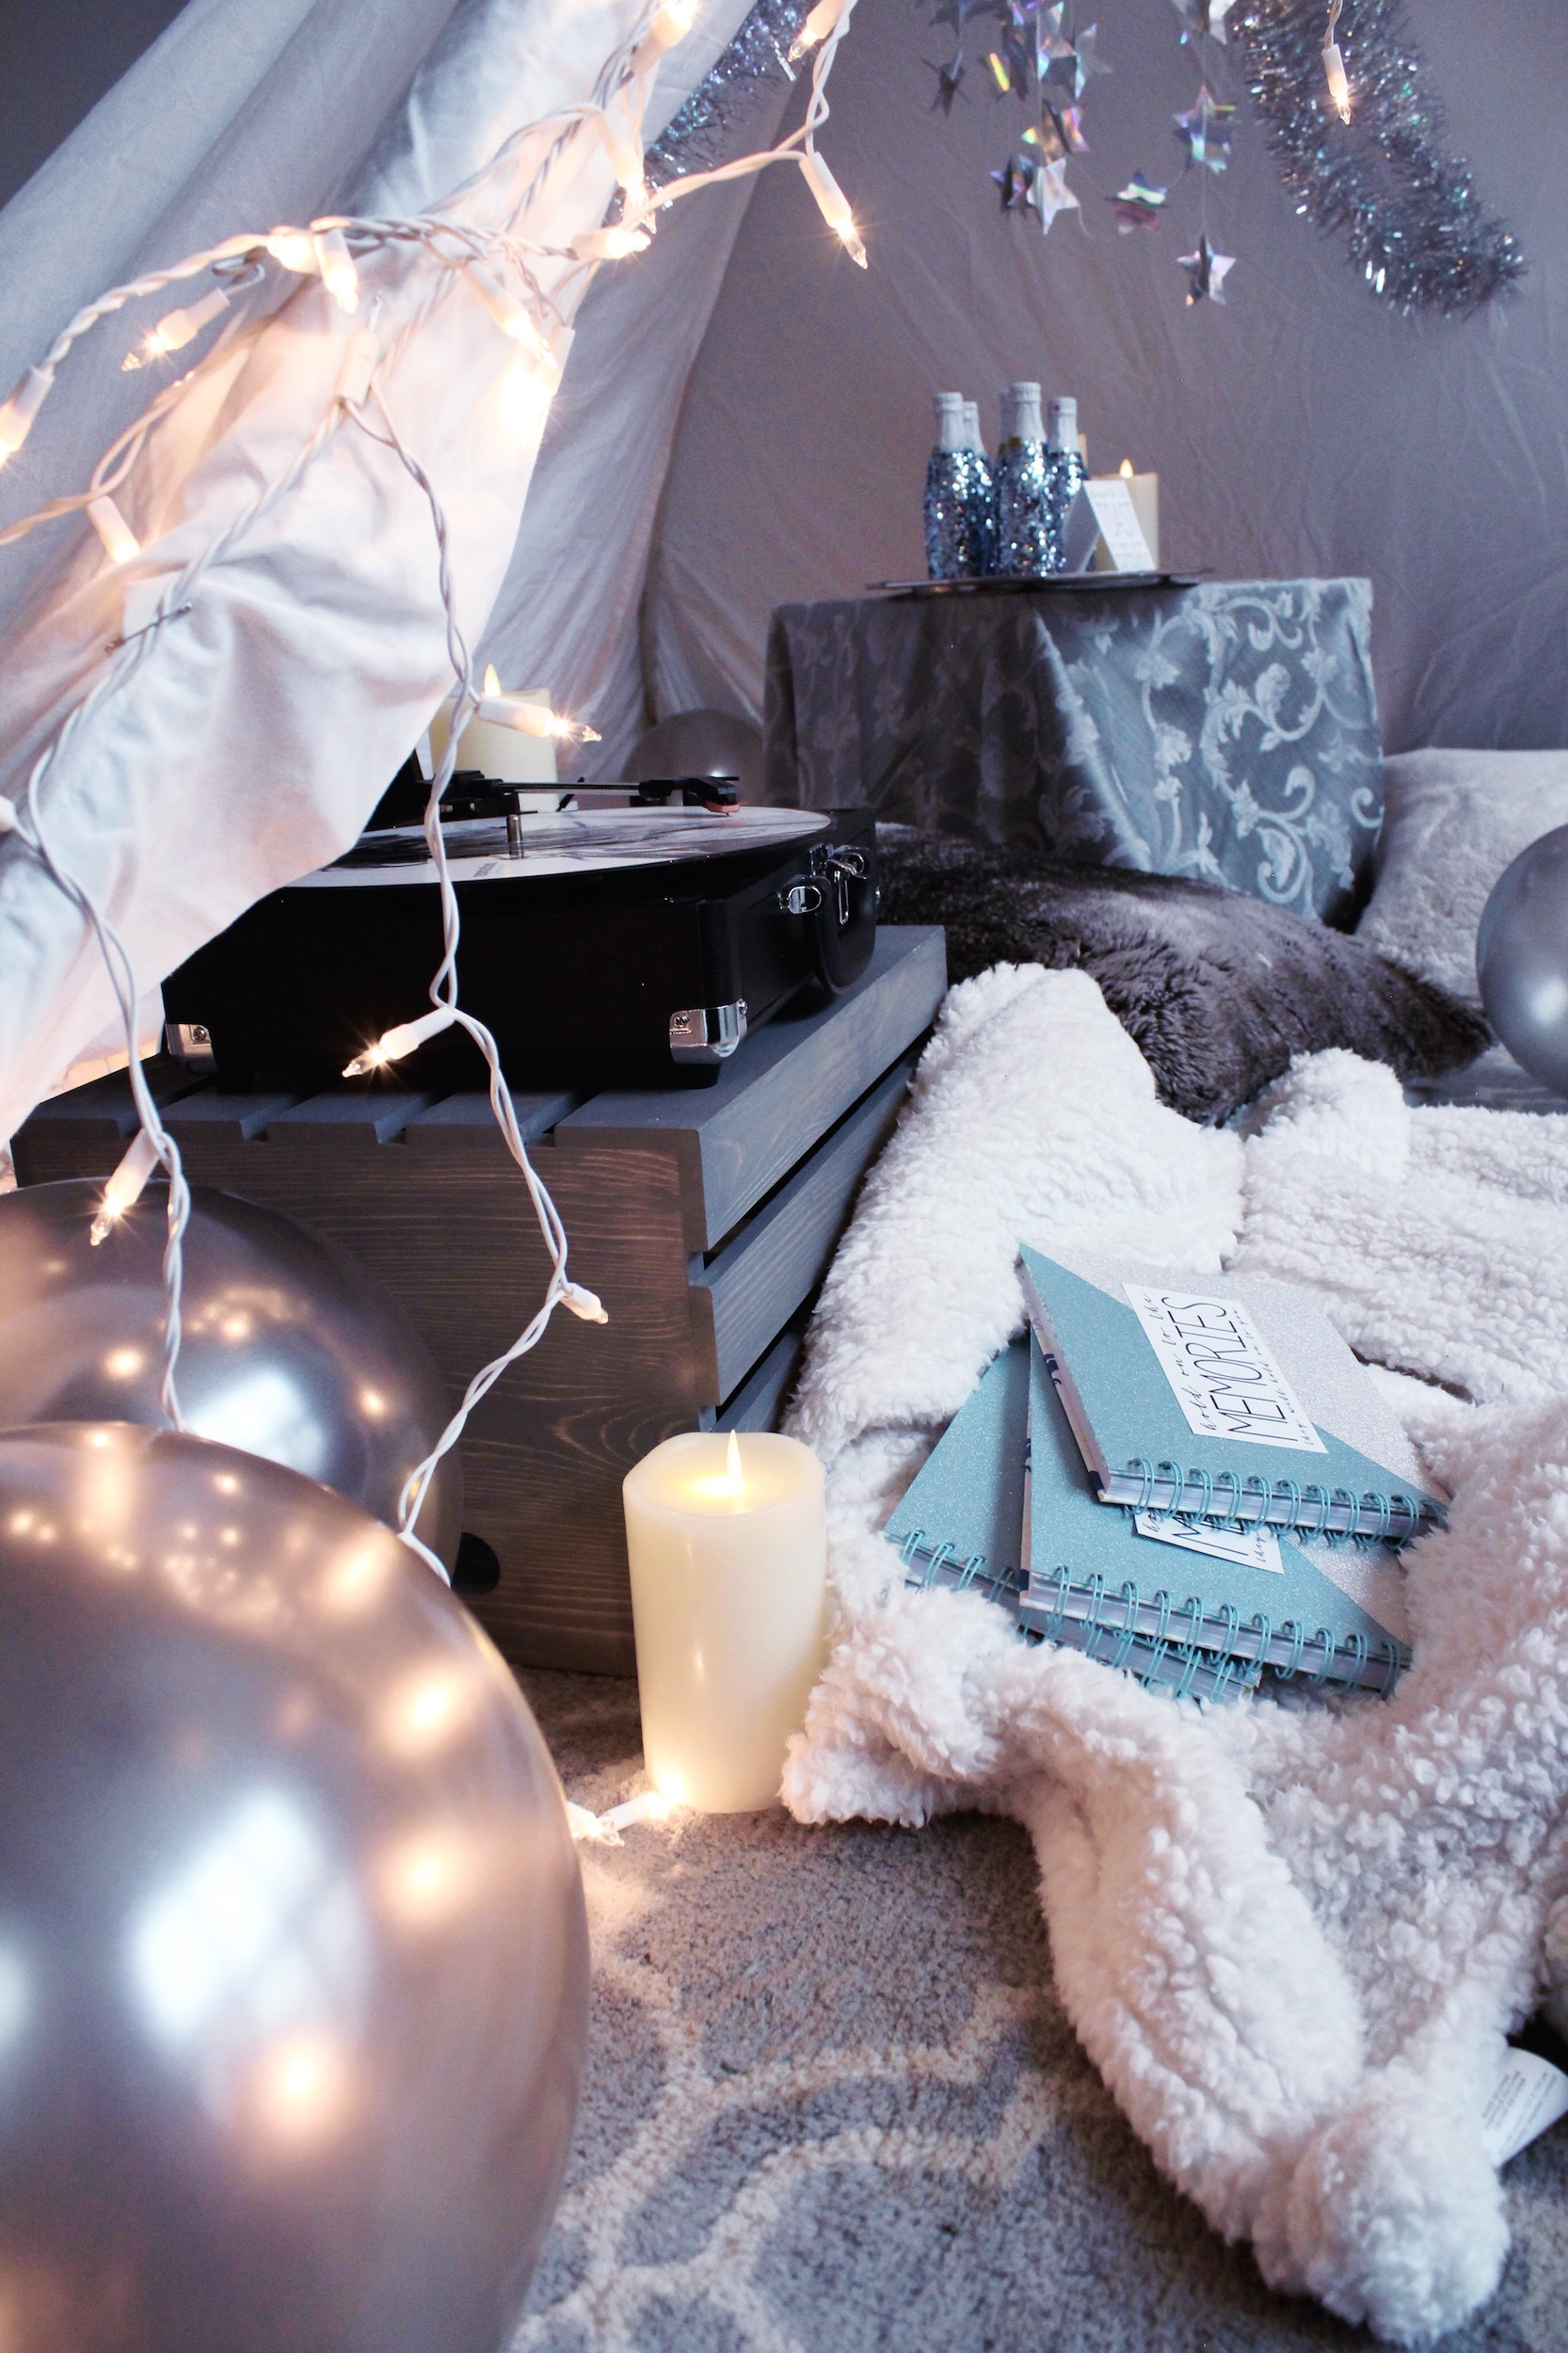 Taylor Swift Reputation New Year's Eve Blanket Tent_Design Organize Party.JPG